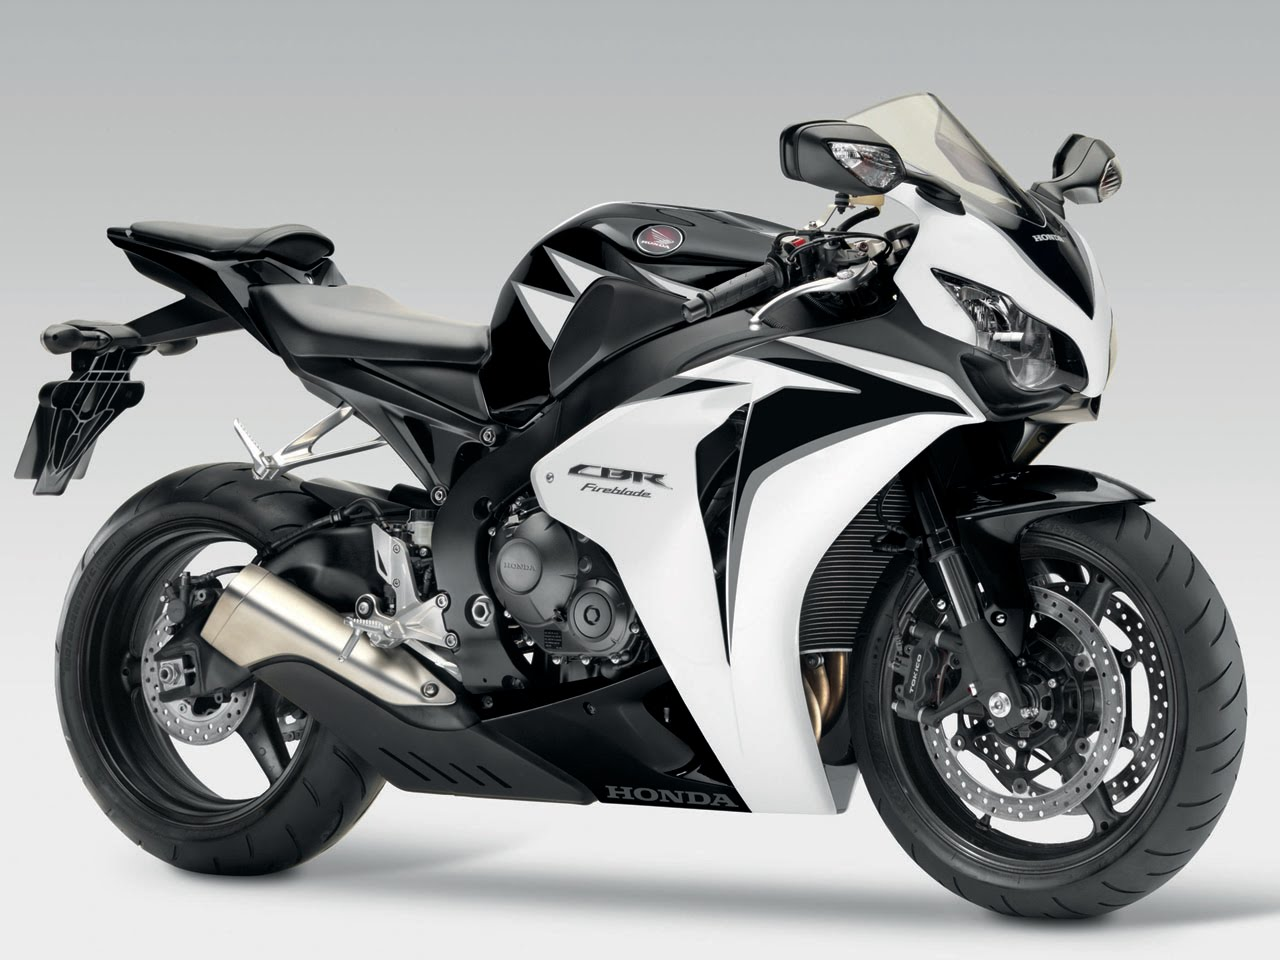 Honda Cbr1000rr 2011 Thebest Motorcycle